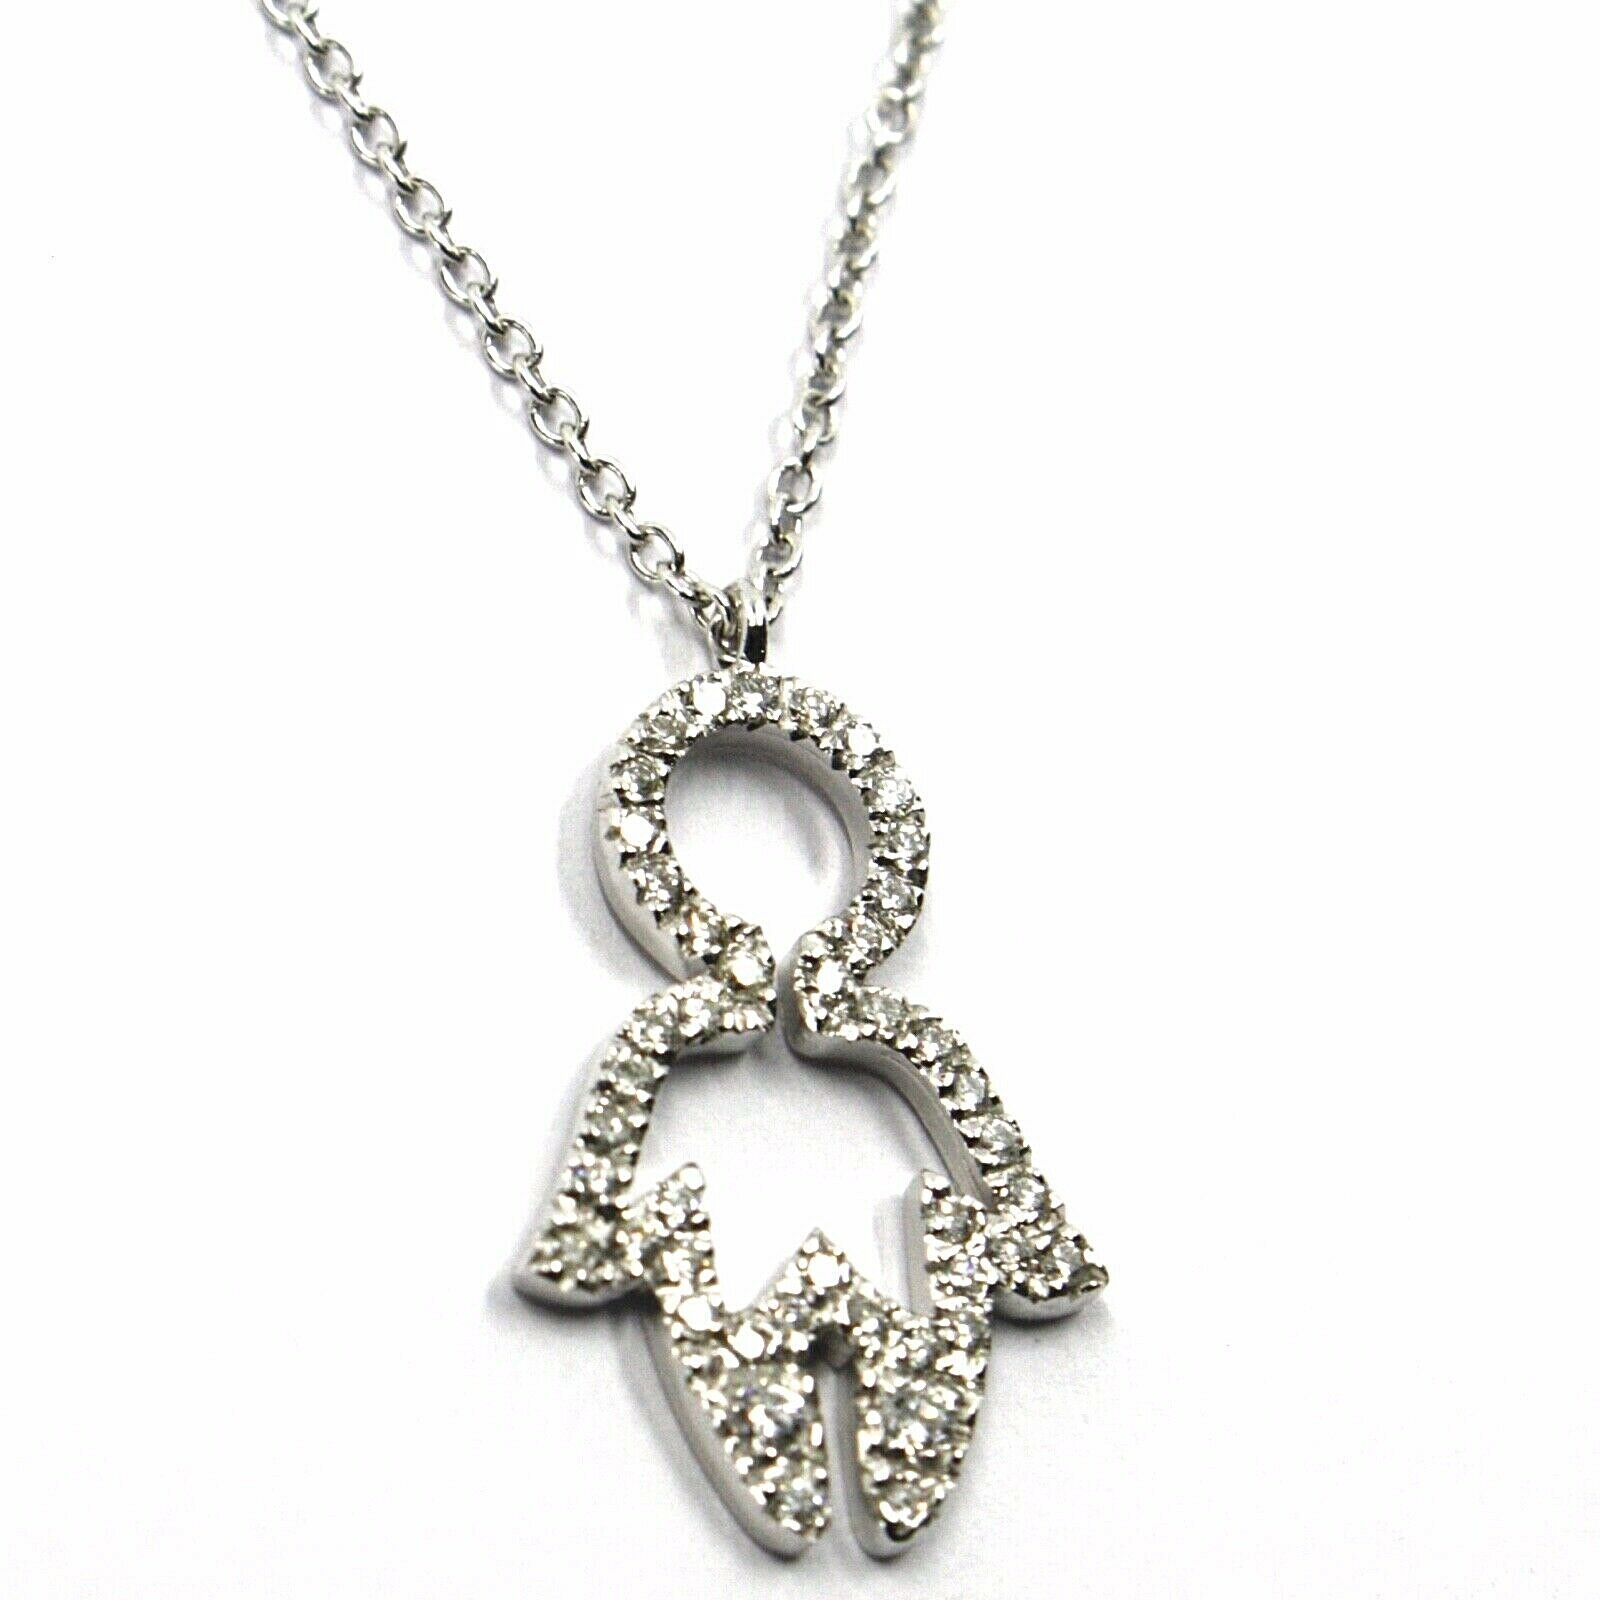 18K WHITE GOLD NECKLACE, BABY CHILD BOY SON PENDANT WITH DIAMONDS ROLO CHAIN